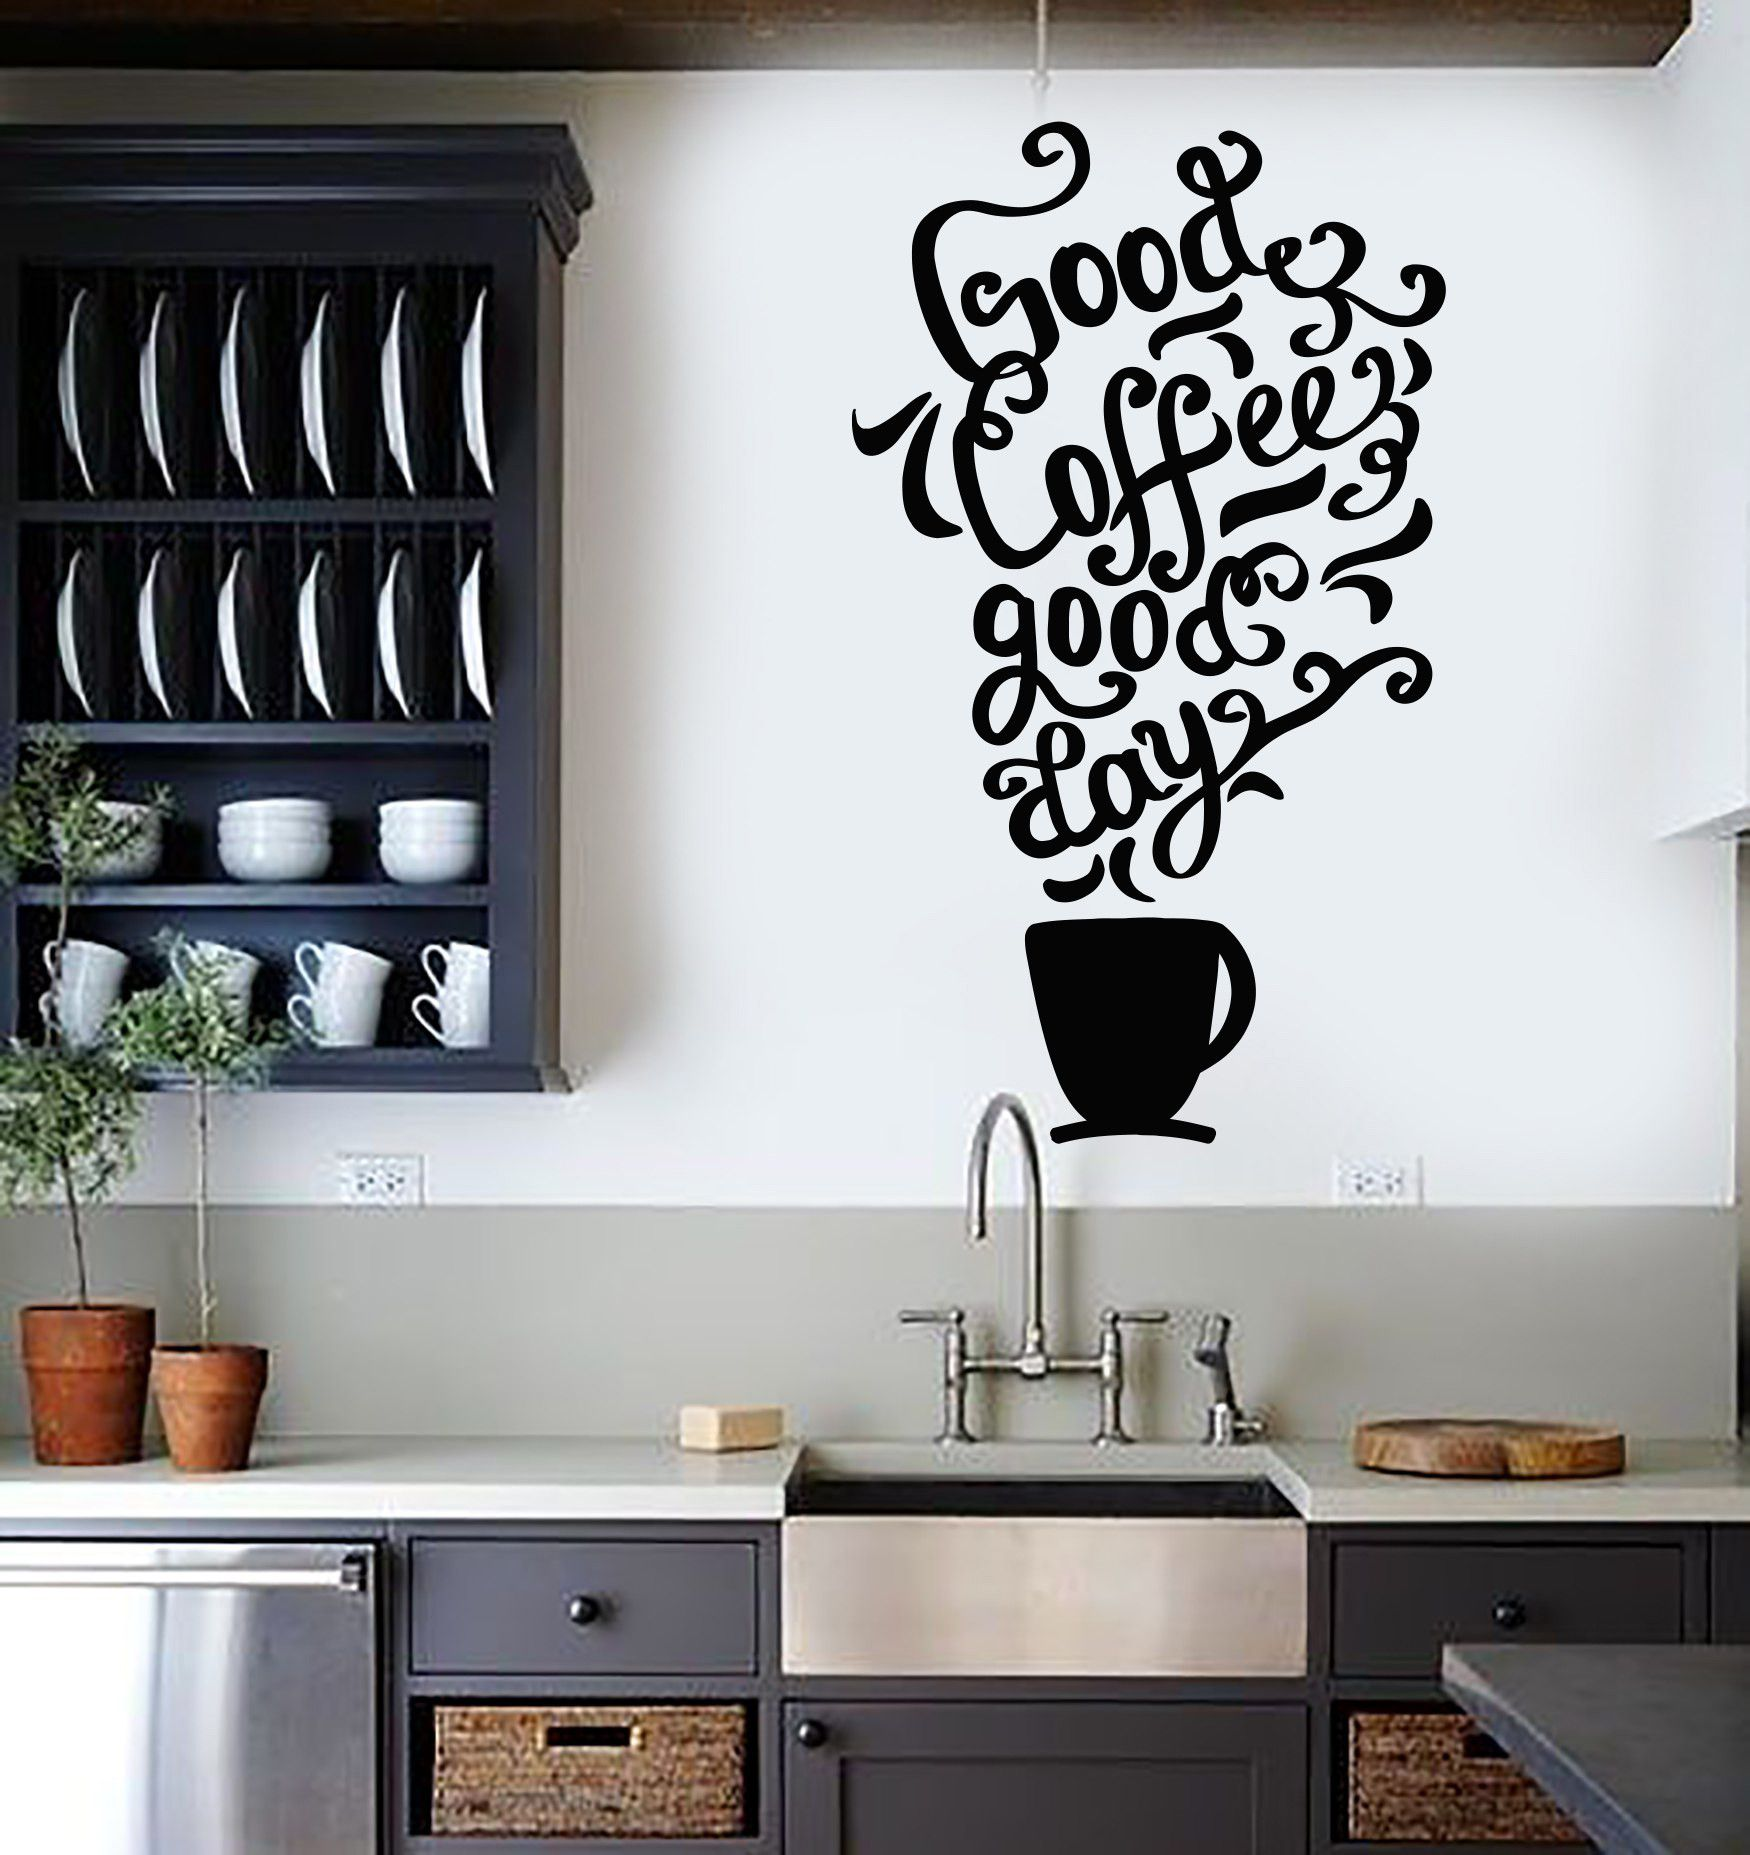 Vinyl wall decal quote coffee kitchen shop restaurant cafe for What kind of paint to use on kitchen cabinets for wall art poems